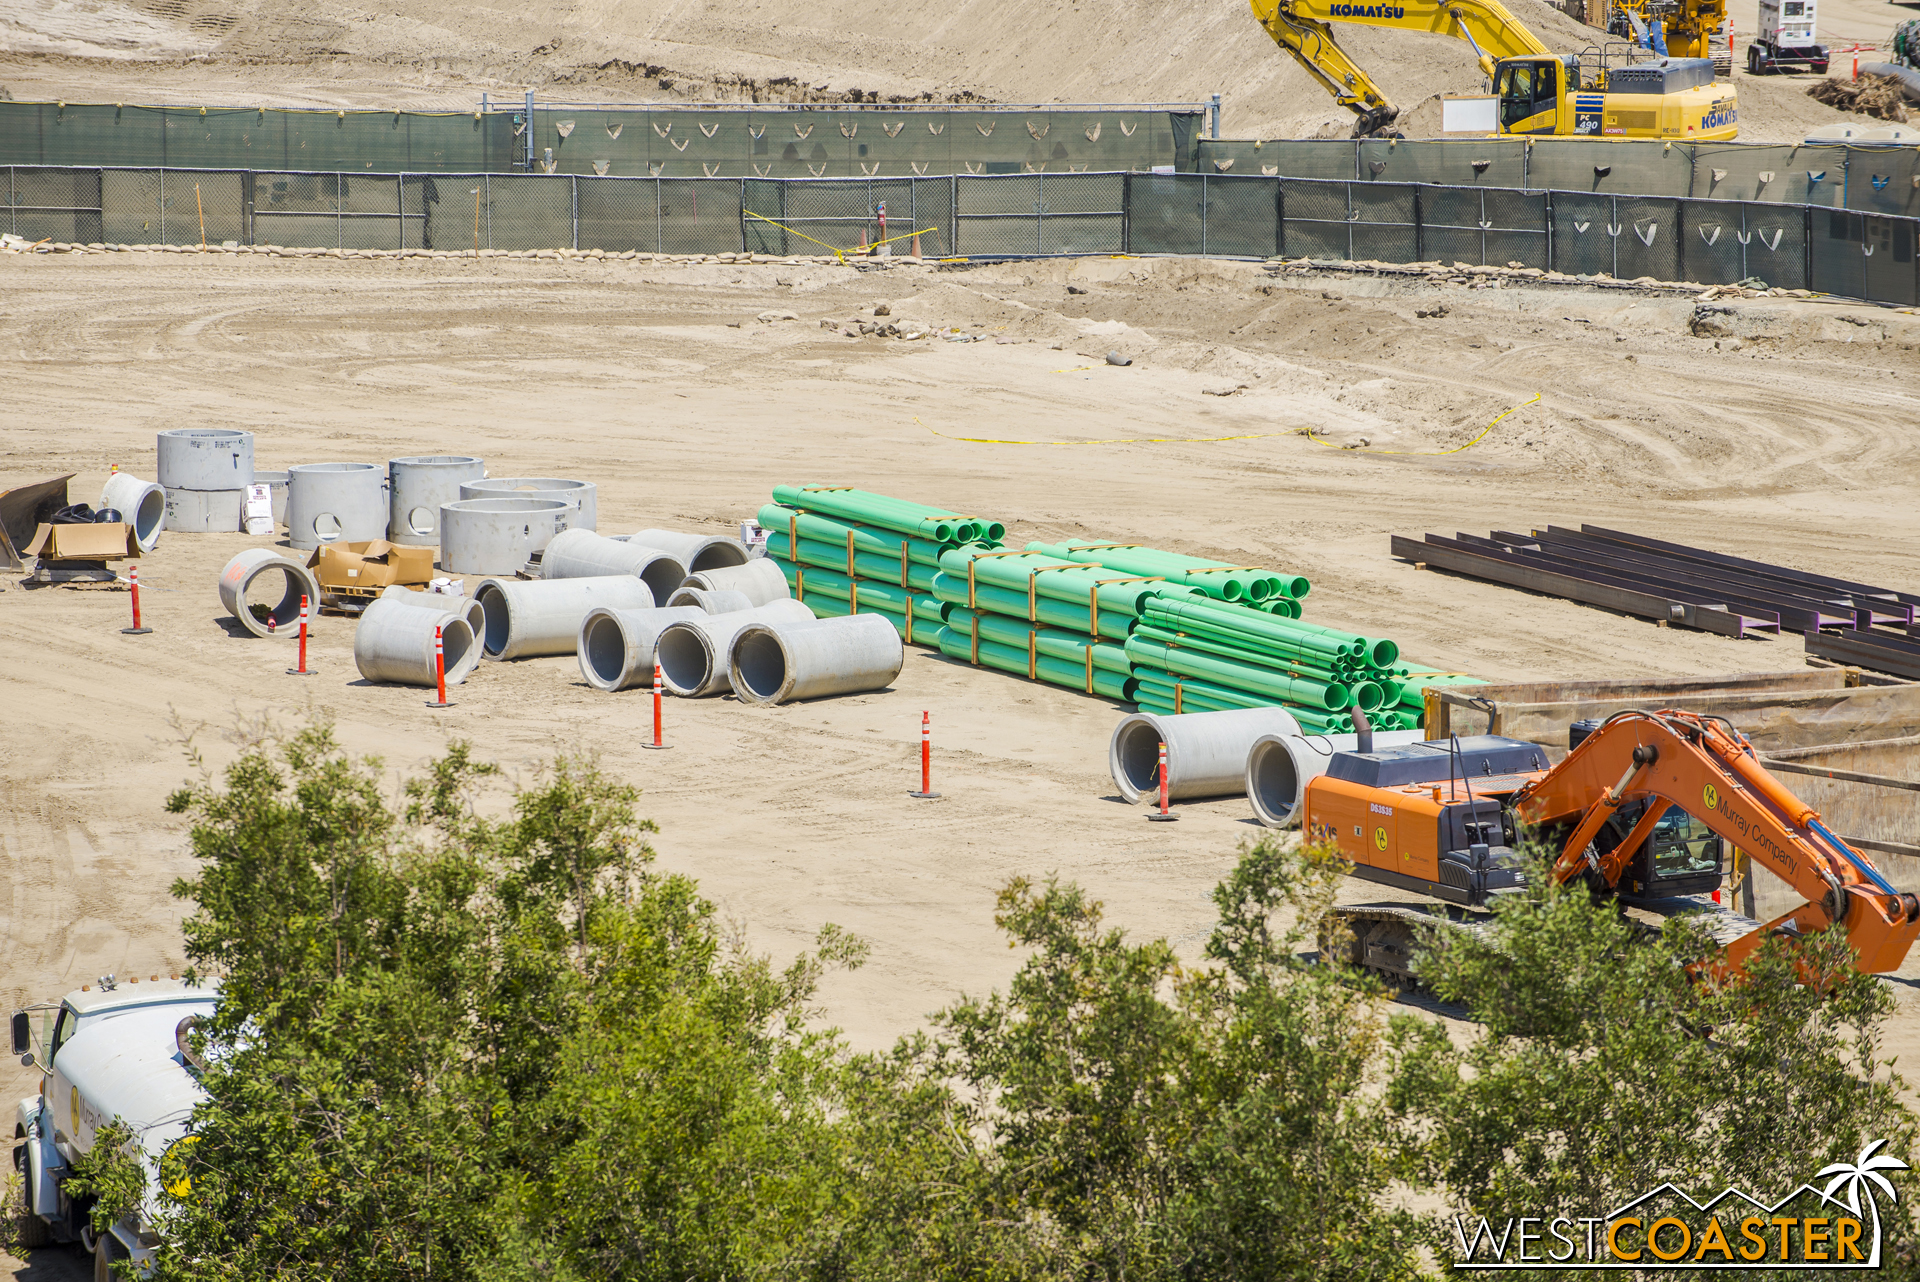 The #PoopPies are scattered around too. They've really laid a lot of pipe here. Big pipes, medium pipes, small pipes. Pipes of all sizes and colors.